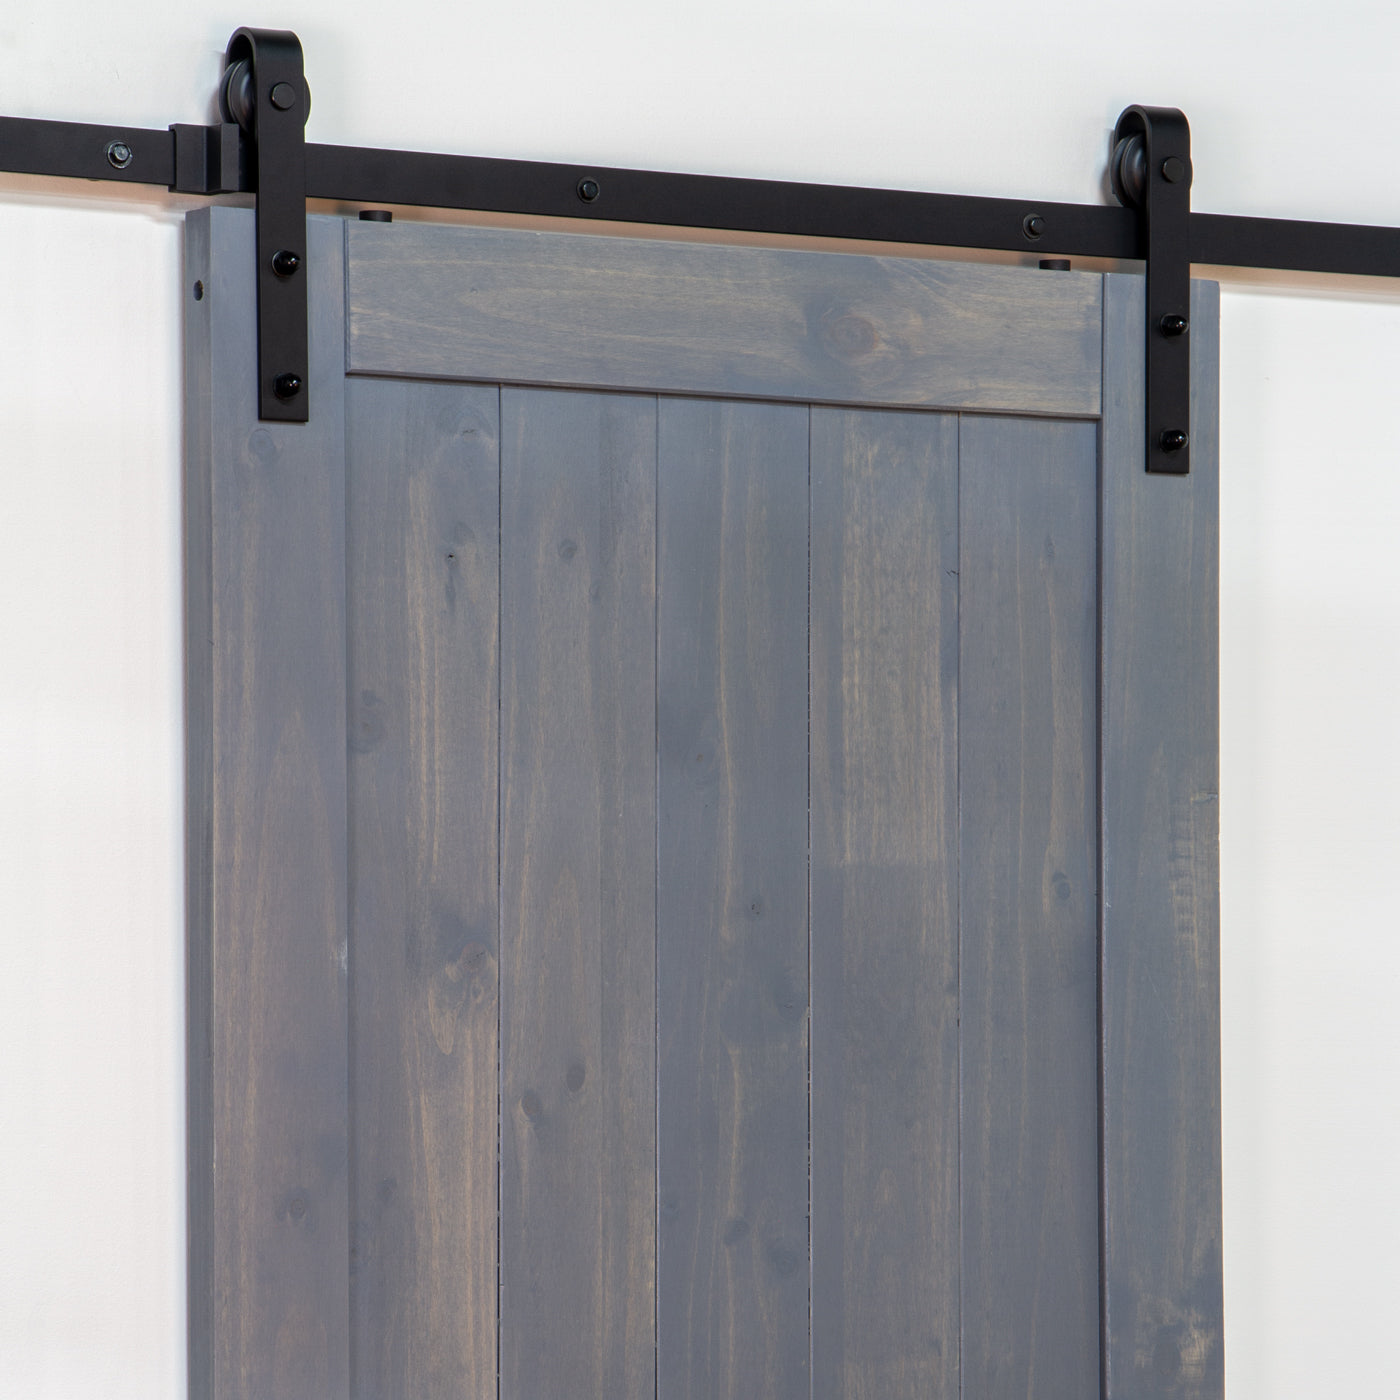 Barn Door Hardware Track Kit (Track & Roller Only)